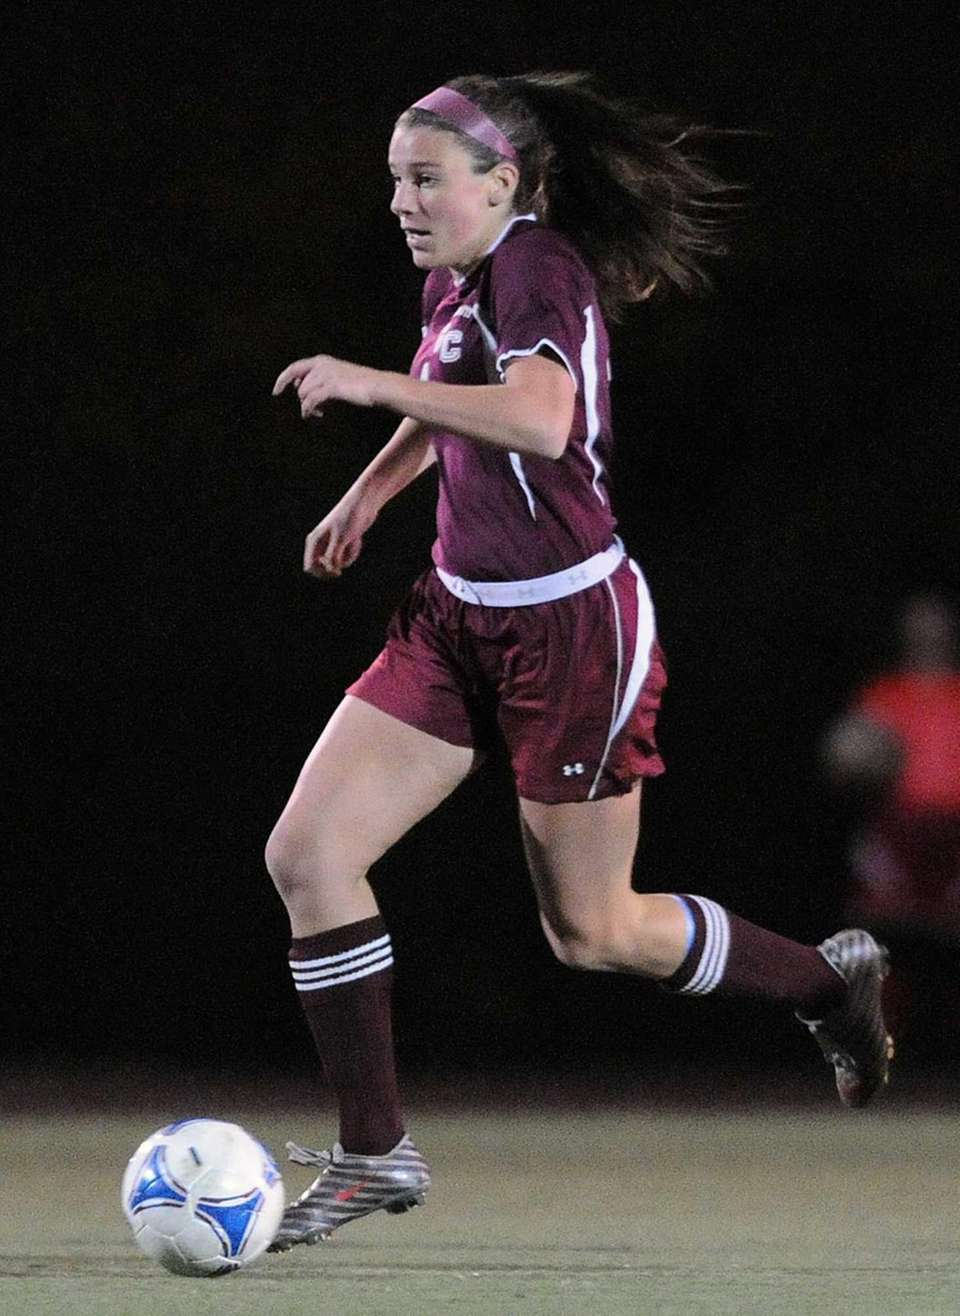 Garden City's Haley O'Hanlon heads downfield in the